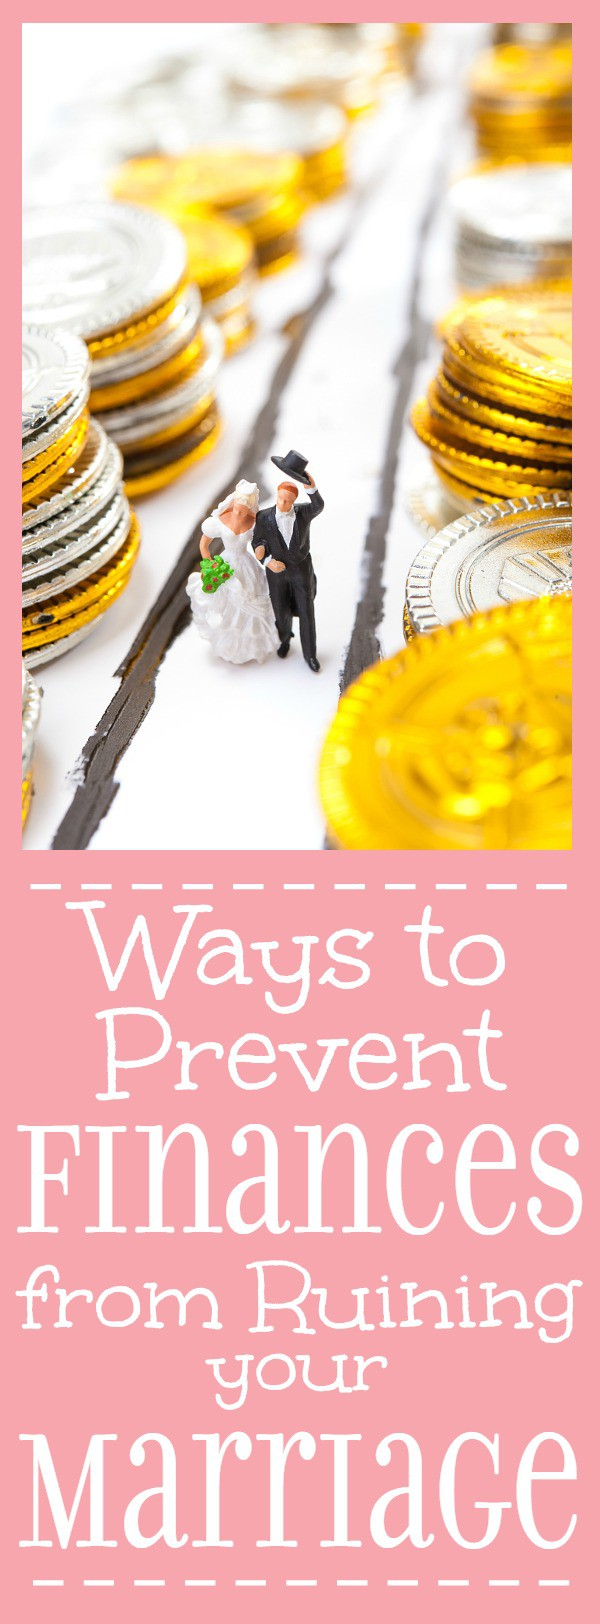 7 Ways to Prevent Finances from Ruining Your Marriage - Finances can be a real hot button in marriage.  Keep your finances and your relationship on track with these 7 Ways to Prevent Finances from Ruining Your Marriage.